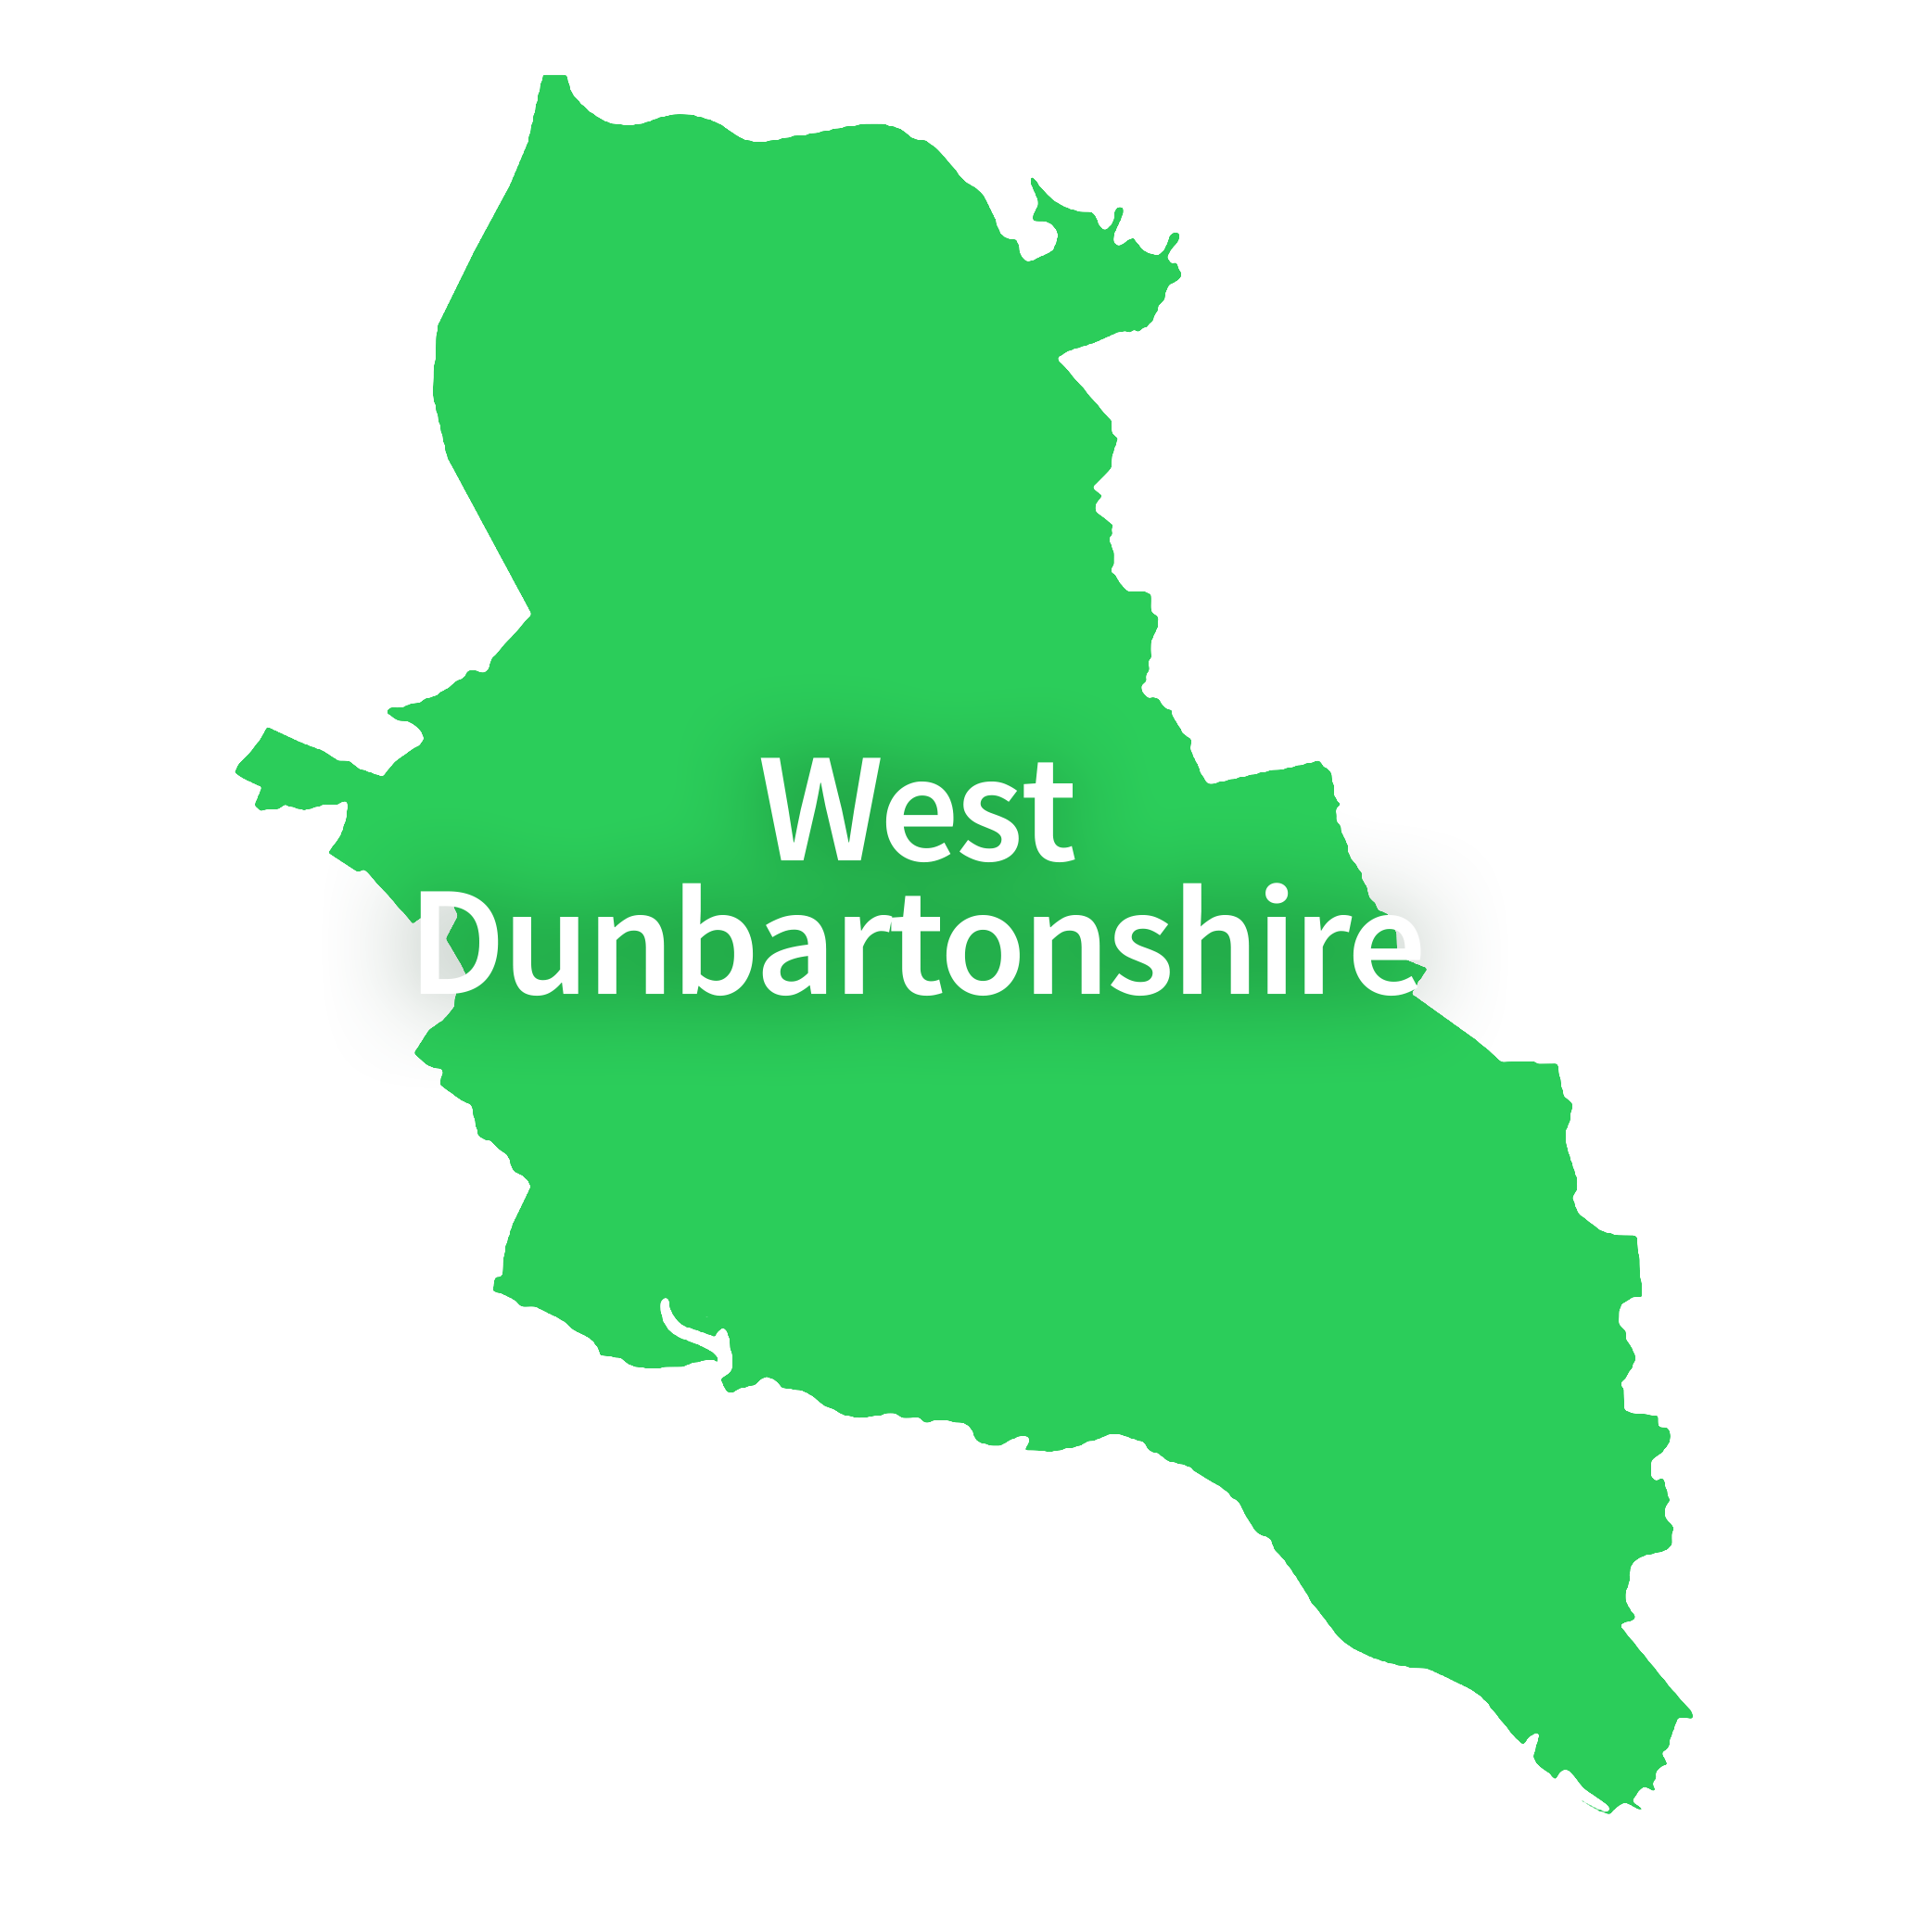 Map of West Dunbartonshire